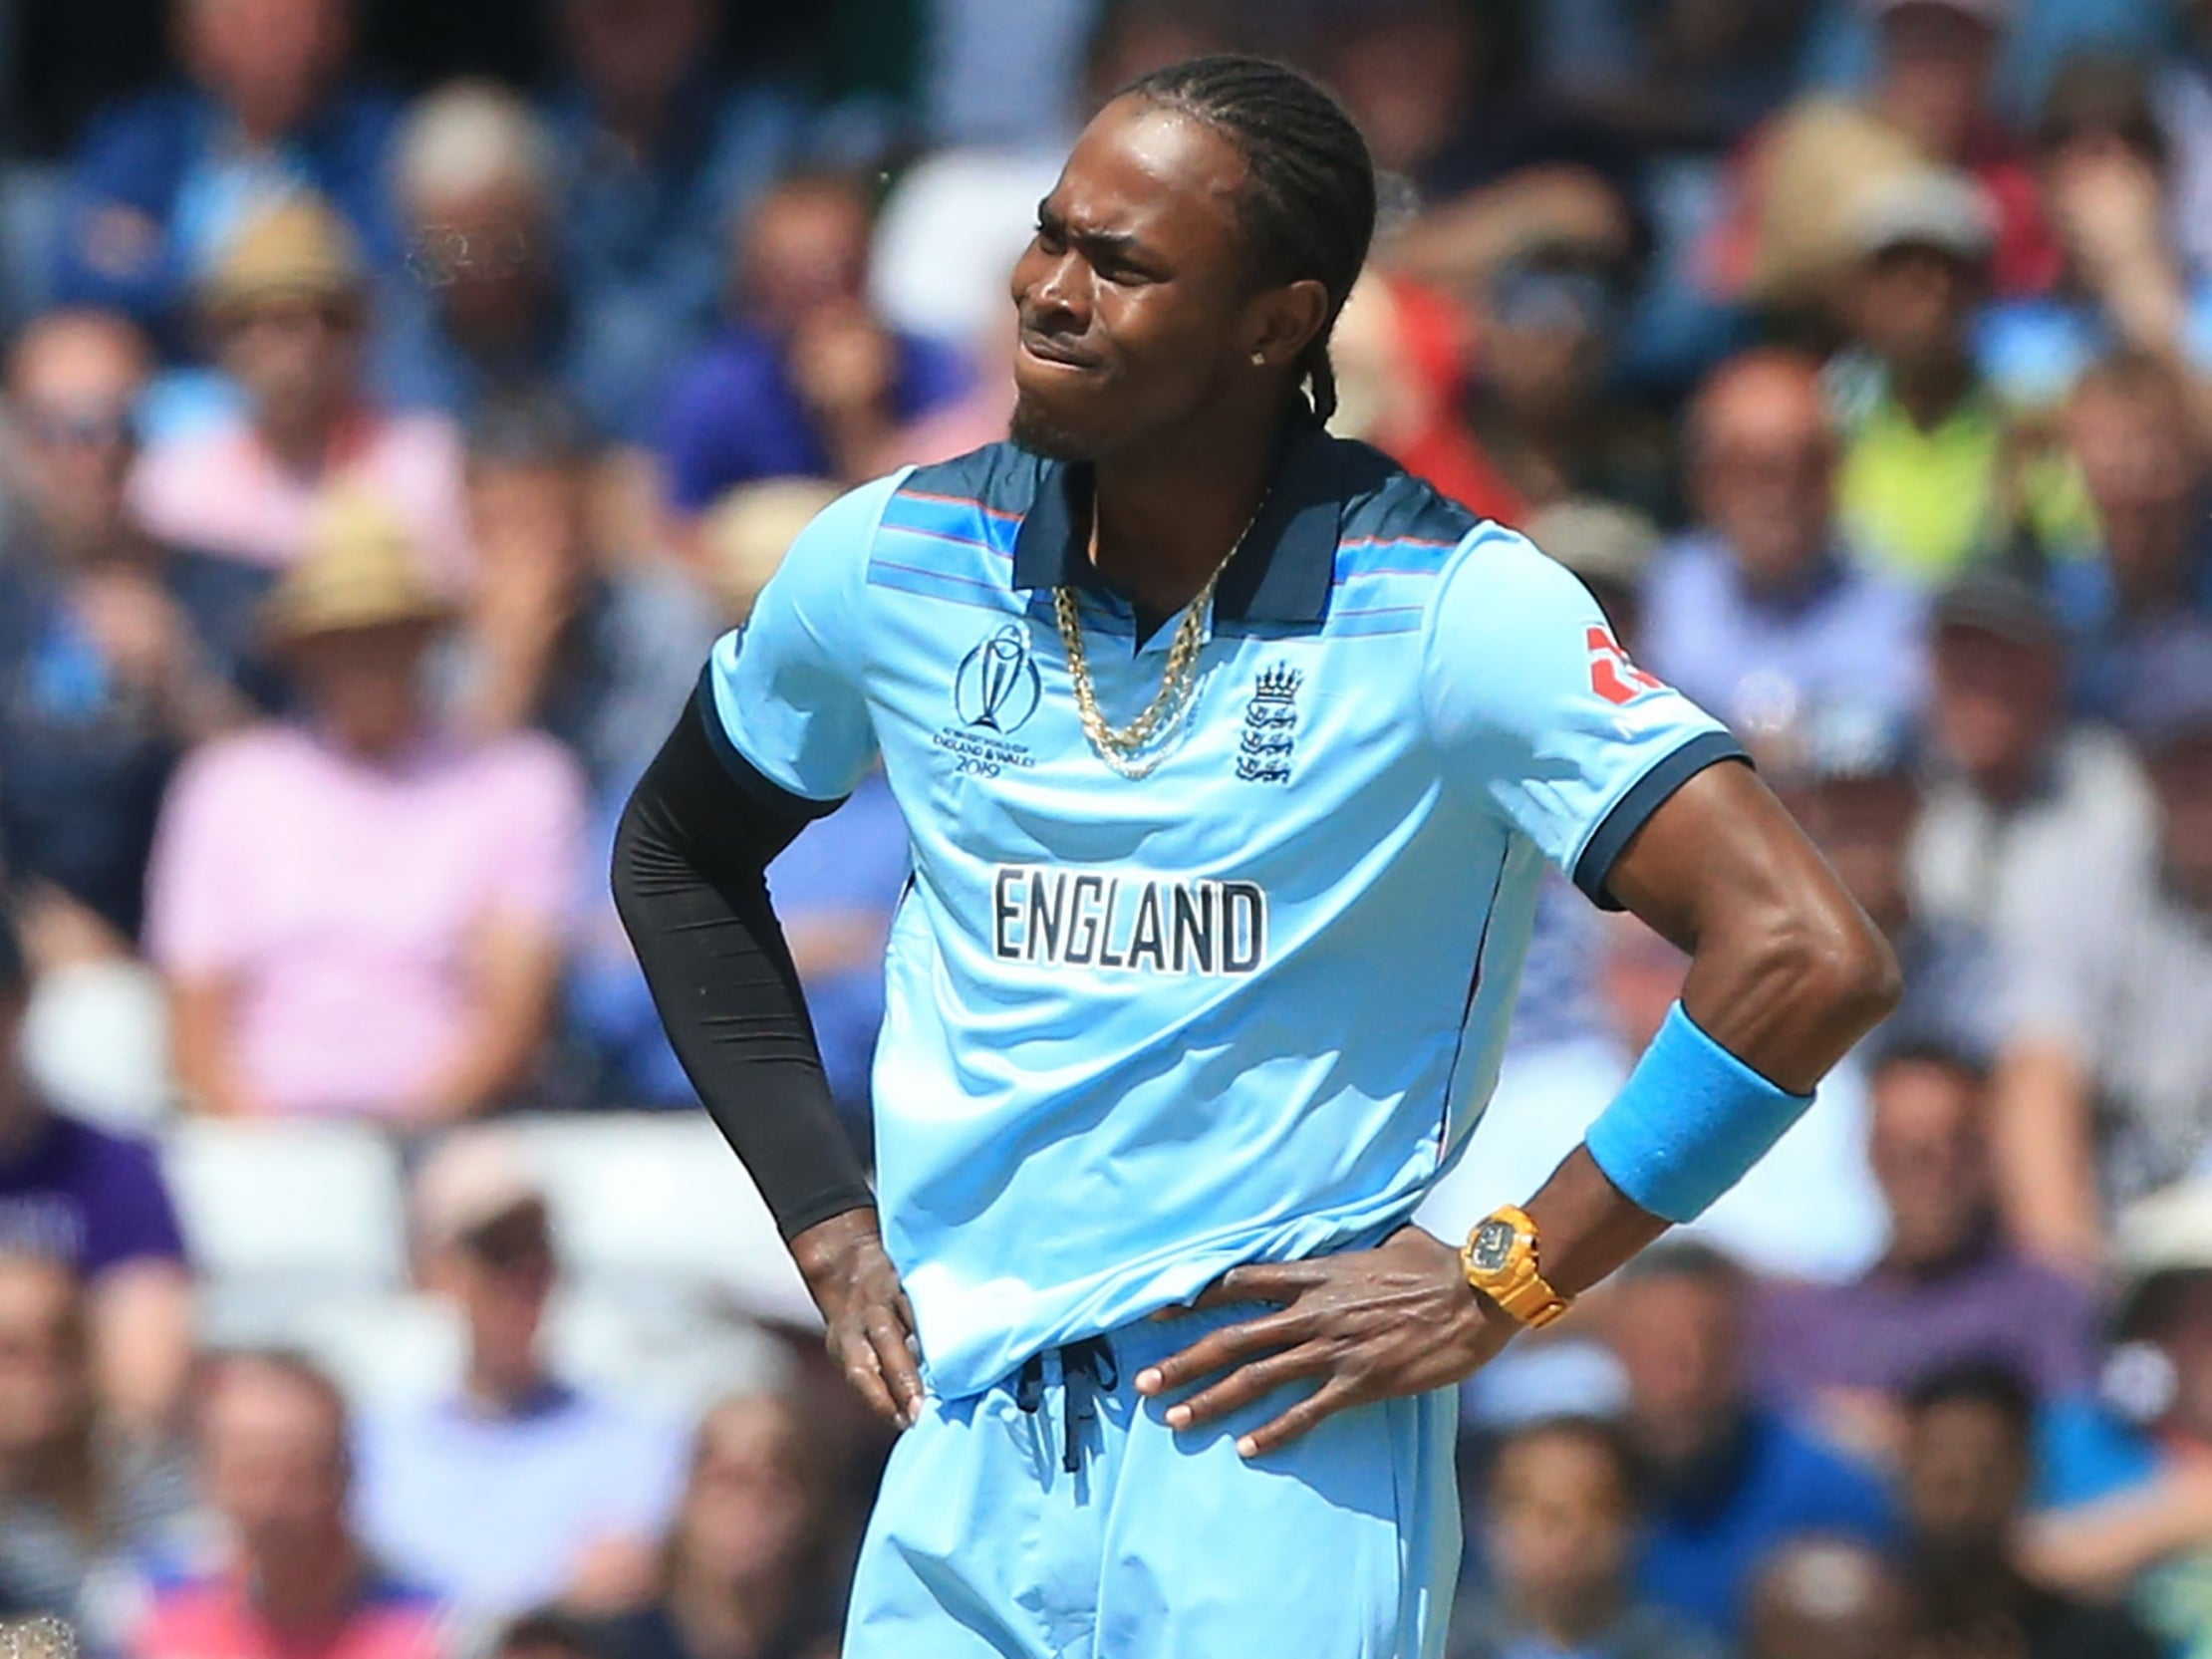 Cricket World Cup 2019: England's Jason Roy and Jofra Archer fined after breaching ICC rules in defeat by Pakistan